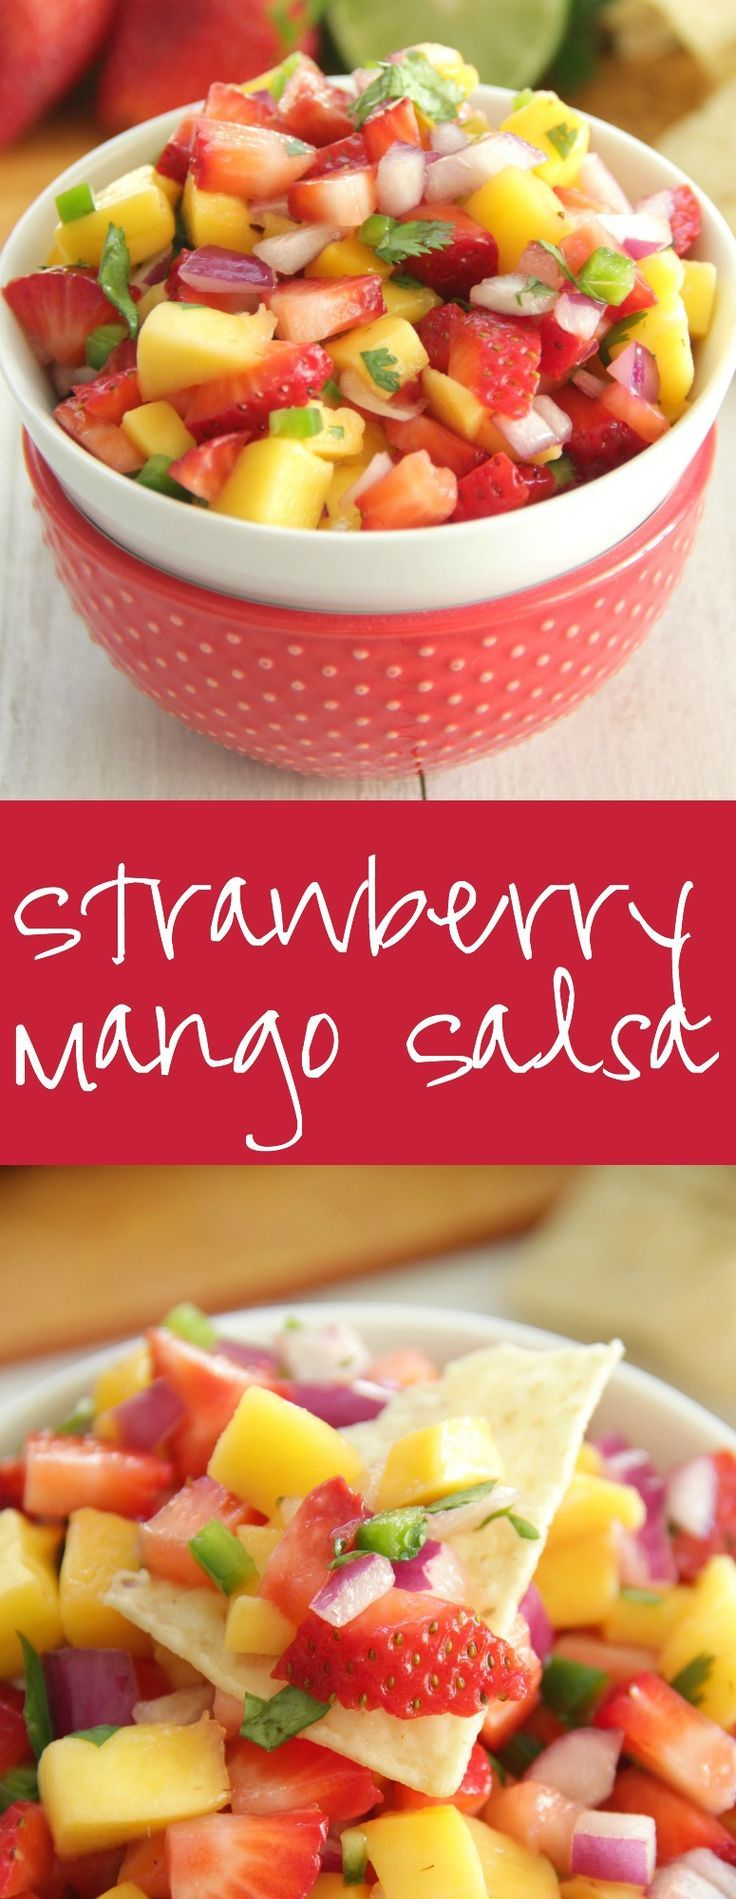 Strawberry Mango Salsa - perfect with chips or over chicken or fish!